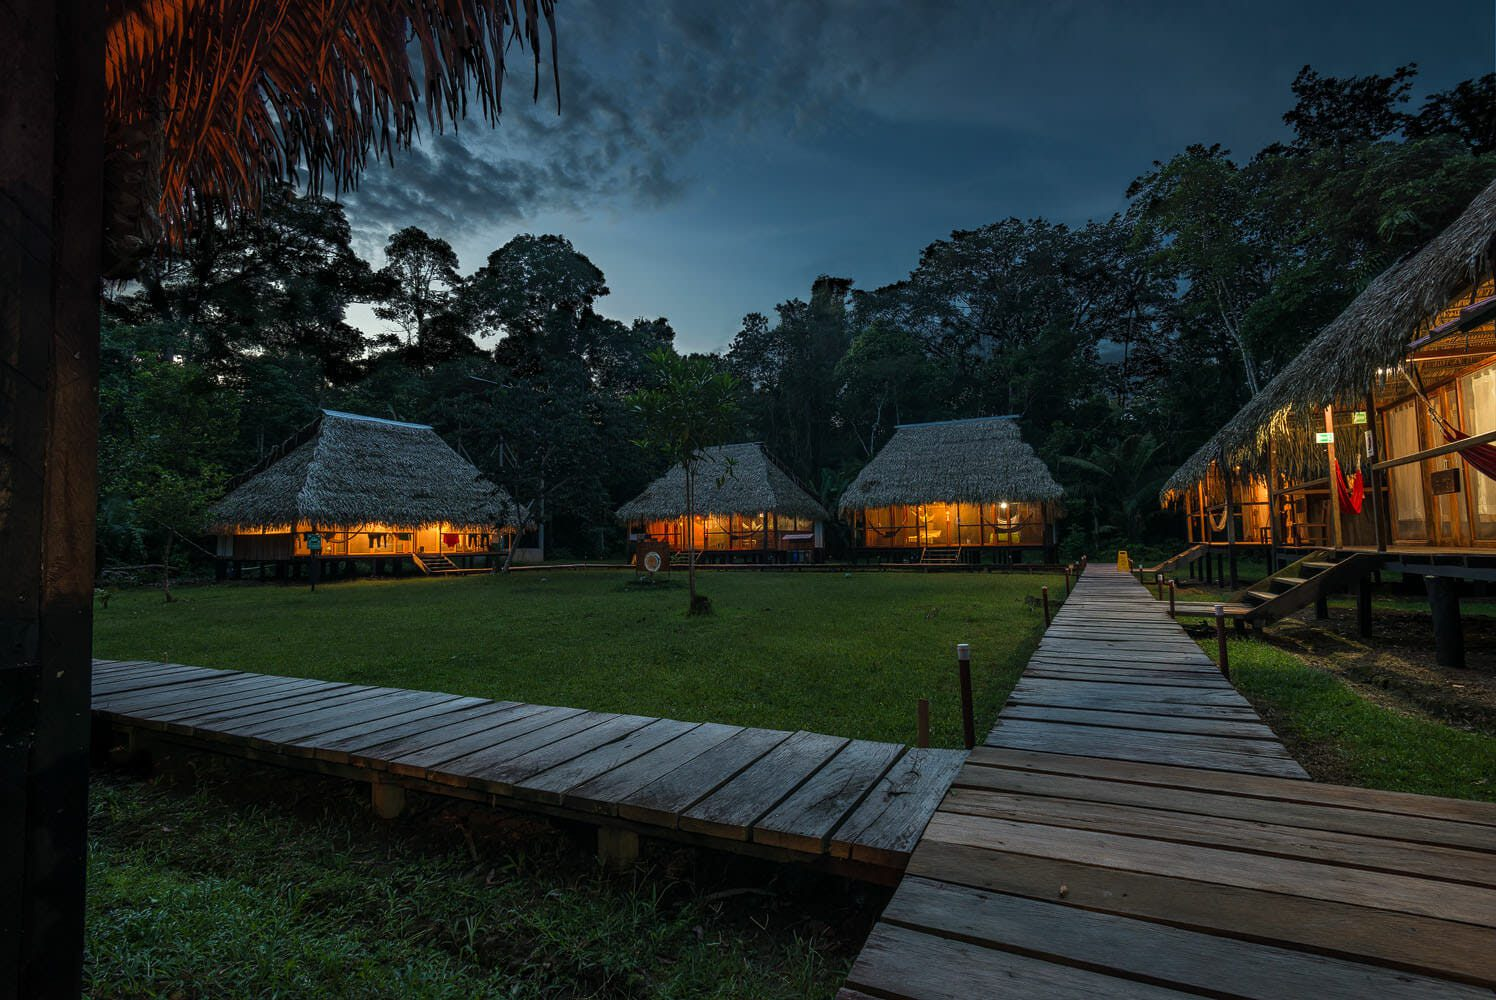 Cabins of the Nicky Lodge at twilight. Cuyabeno Amazon national park